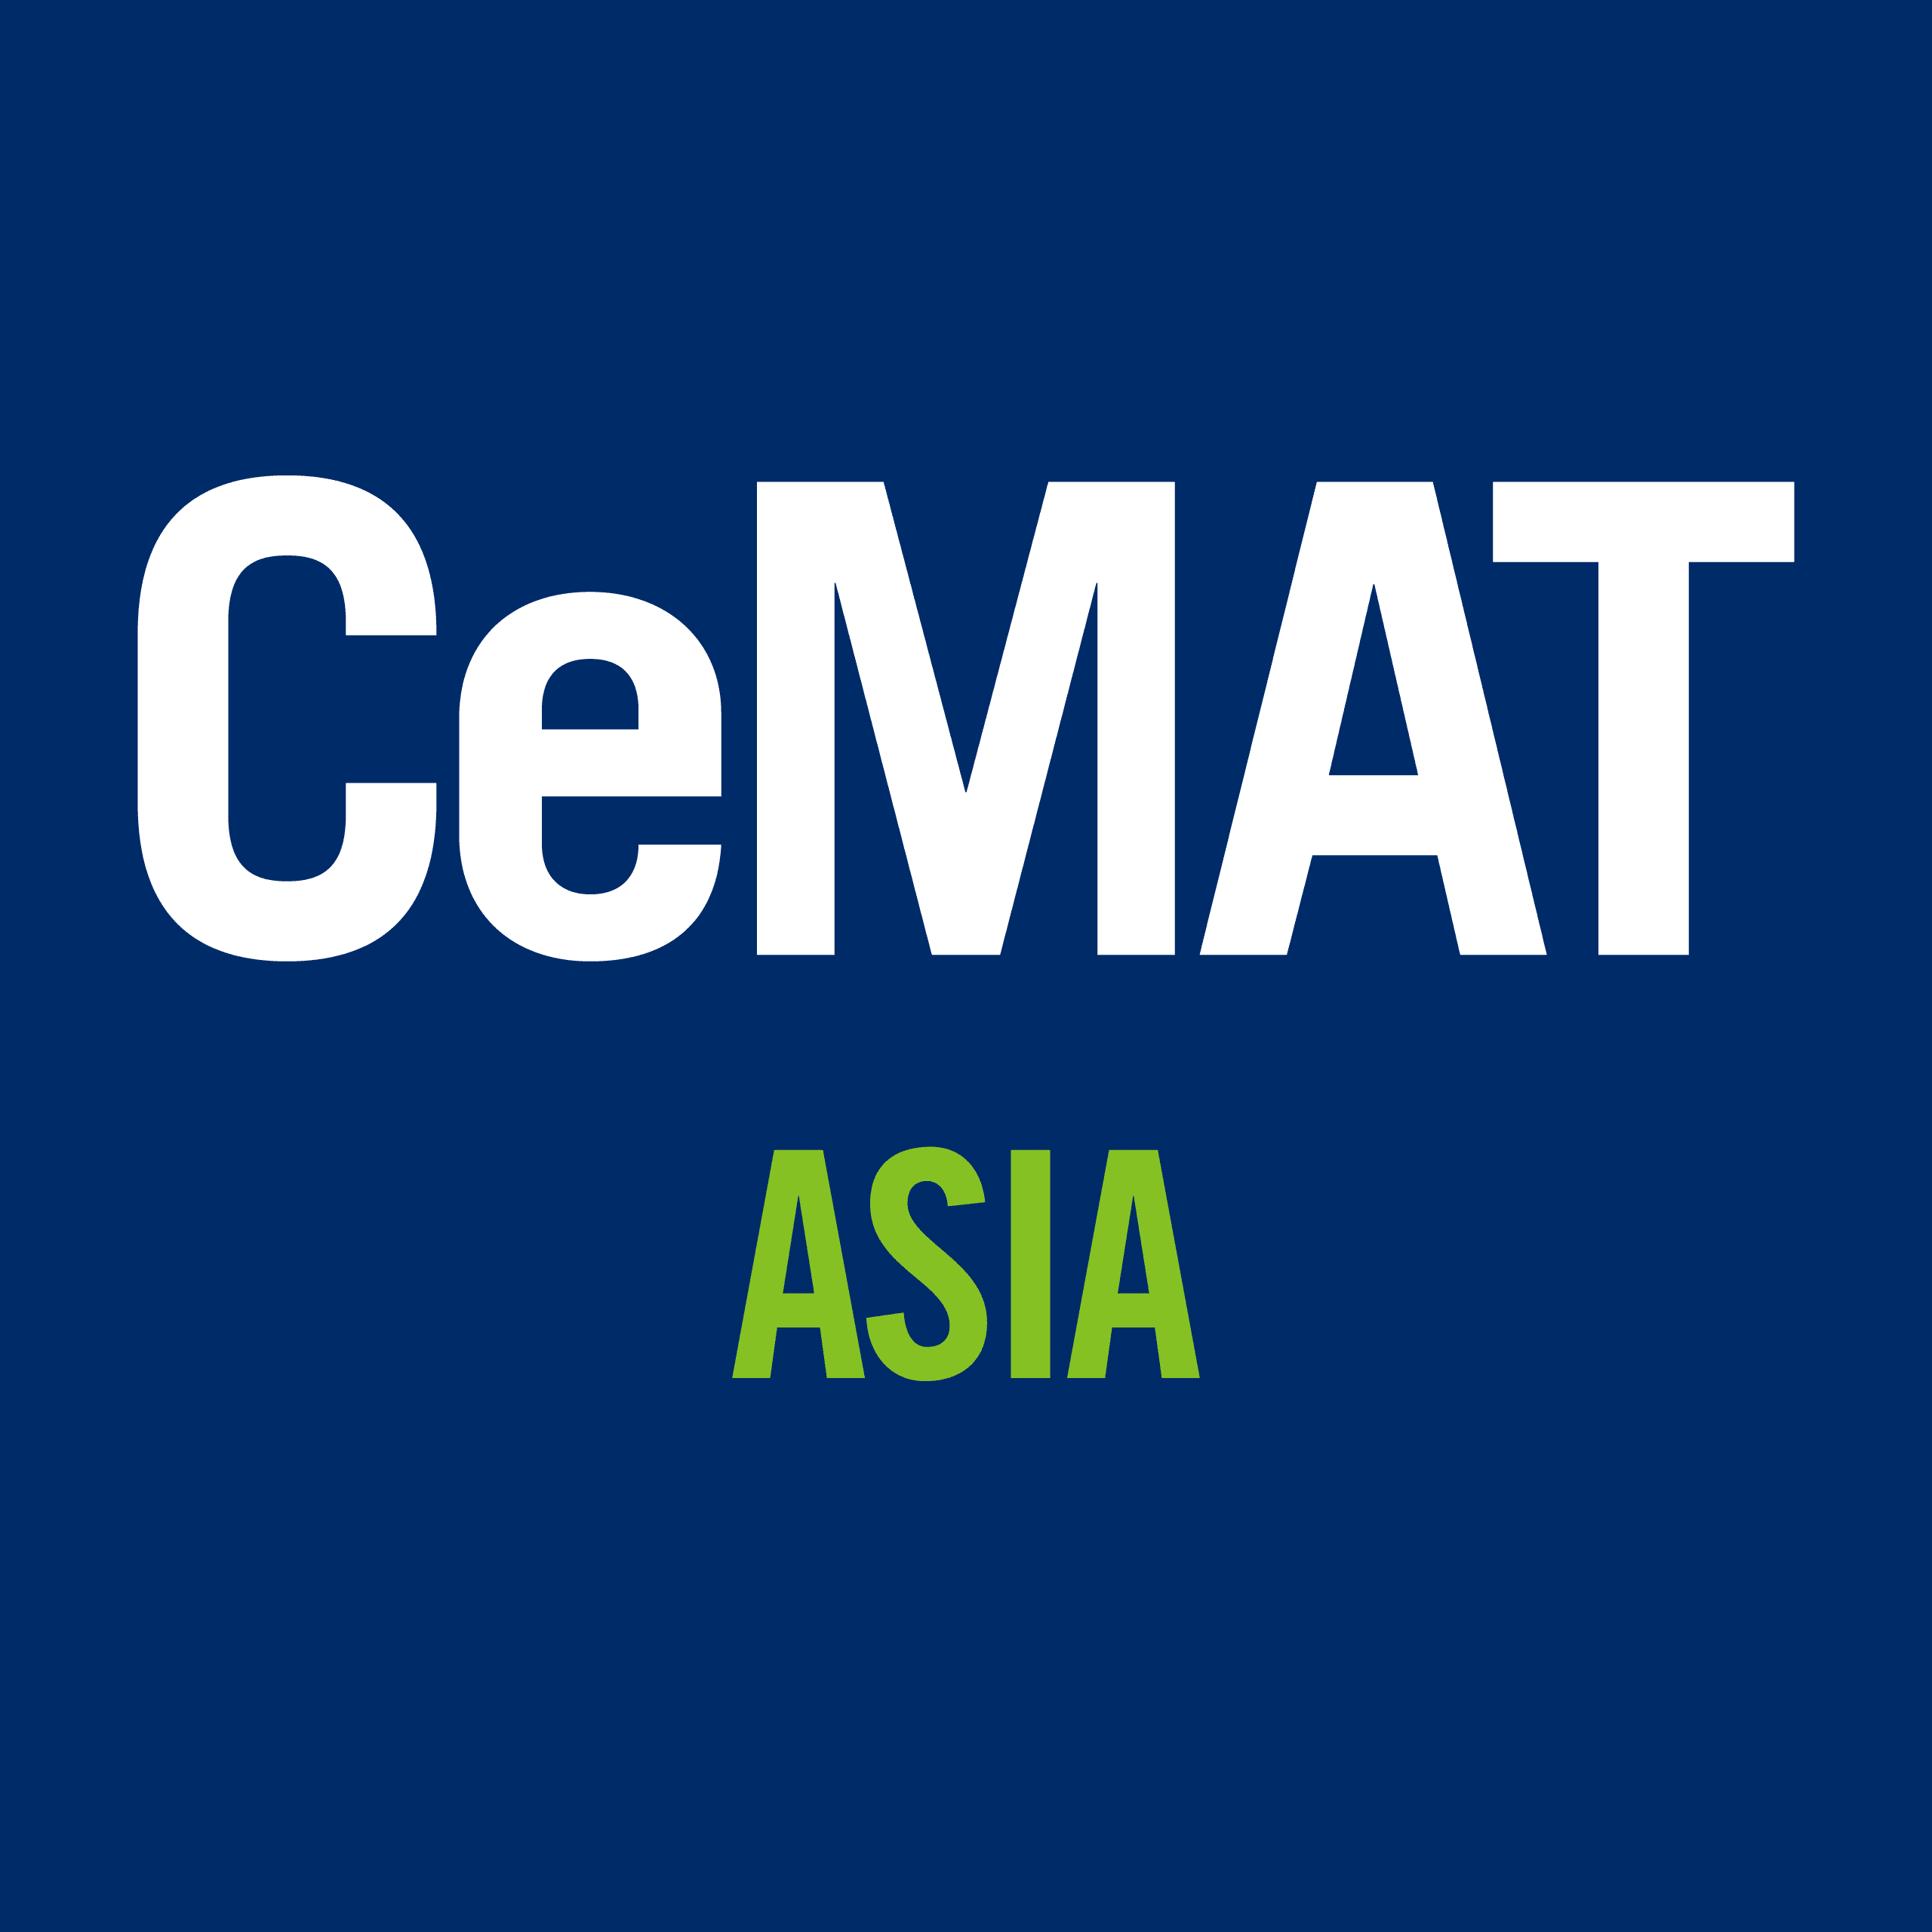 「CeMAT ASIA」で見た物流ソリューションの今